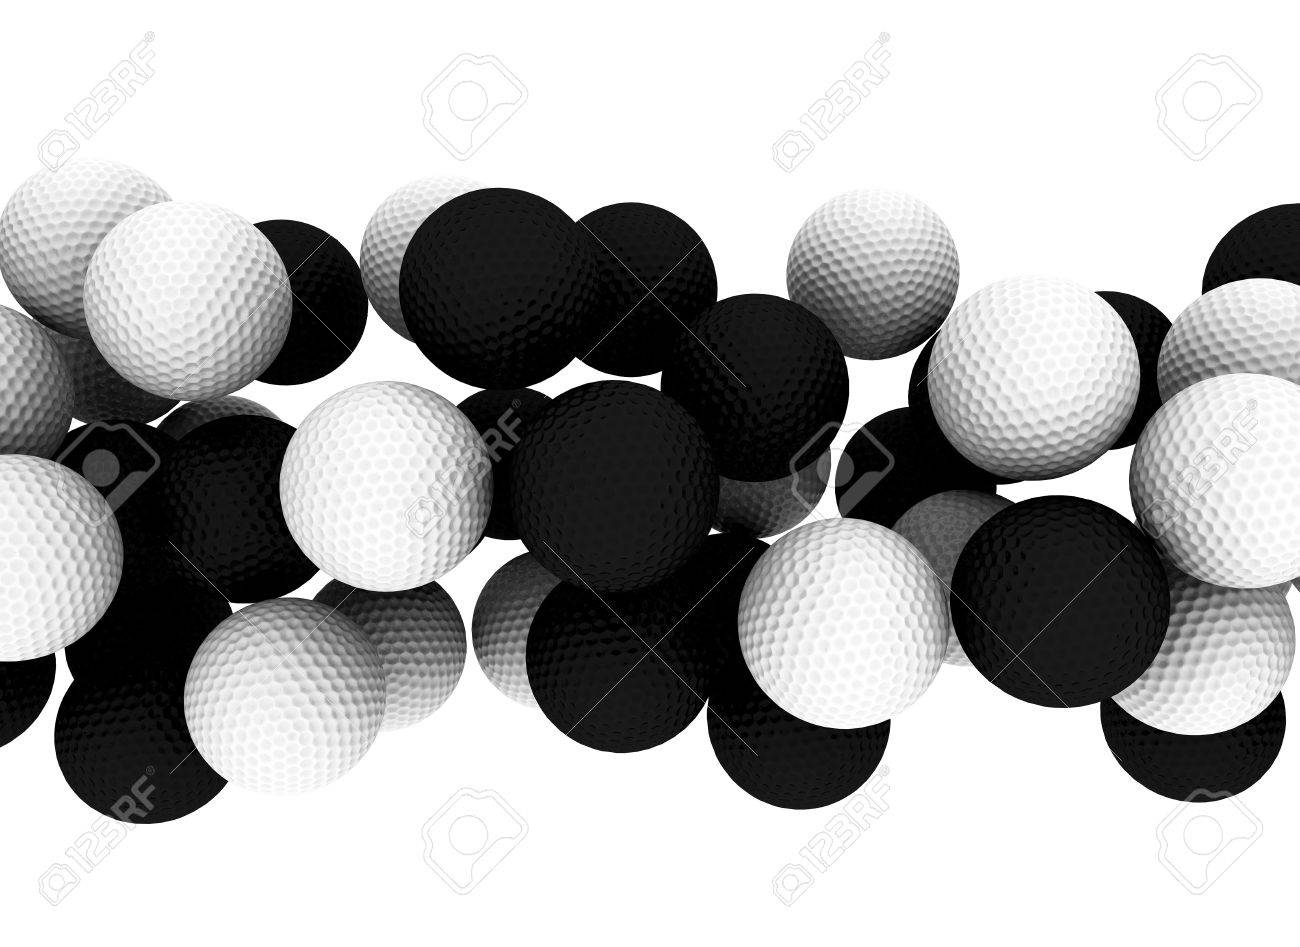 Golf balls Stock Photo - 10782146